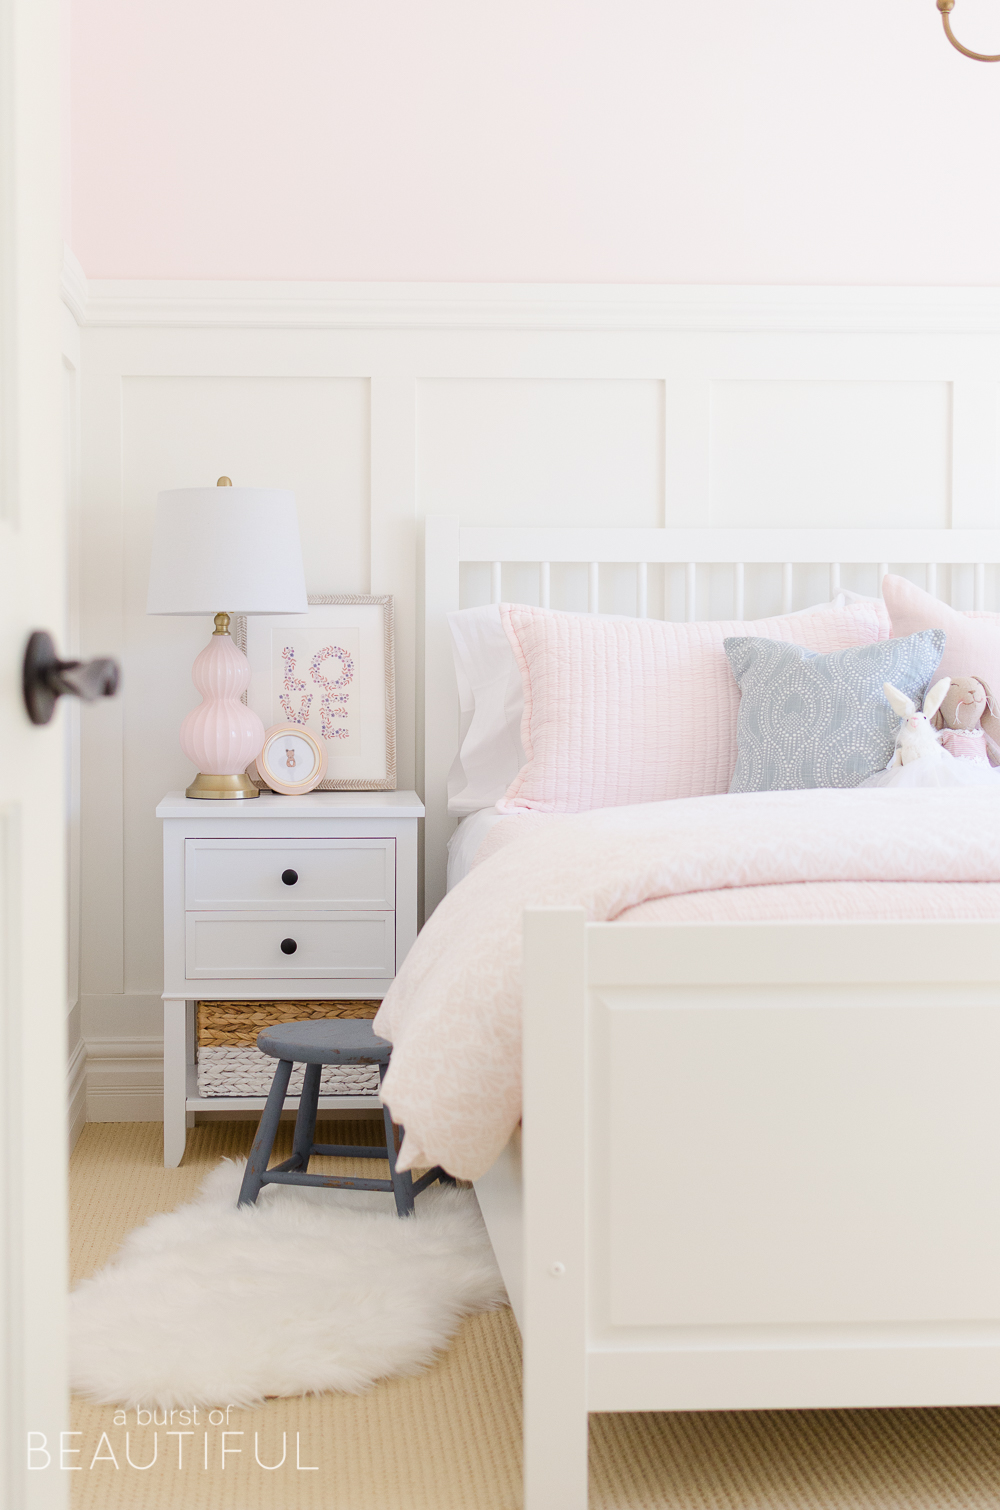 Attirant Once We Had All Of The Big Decisions Made It Was Time To Move Onto The  Little Details. First, We Settled On Bedding. I Love The Look Of A Simple  Quilt Or ...